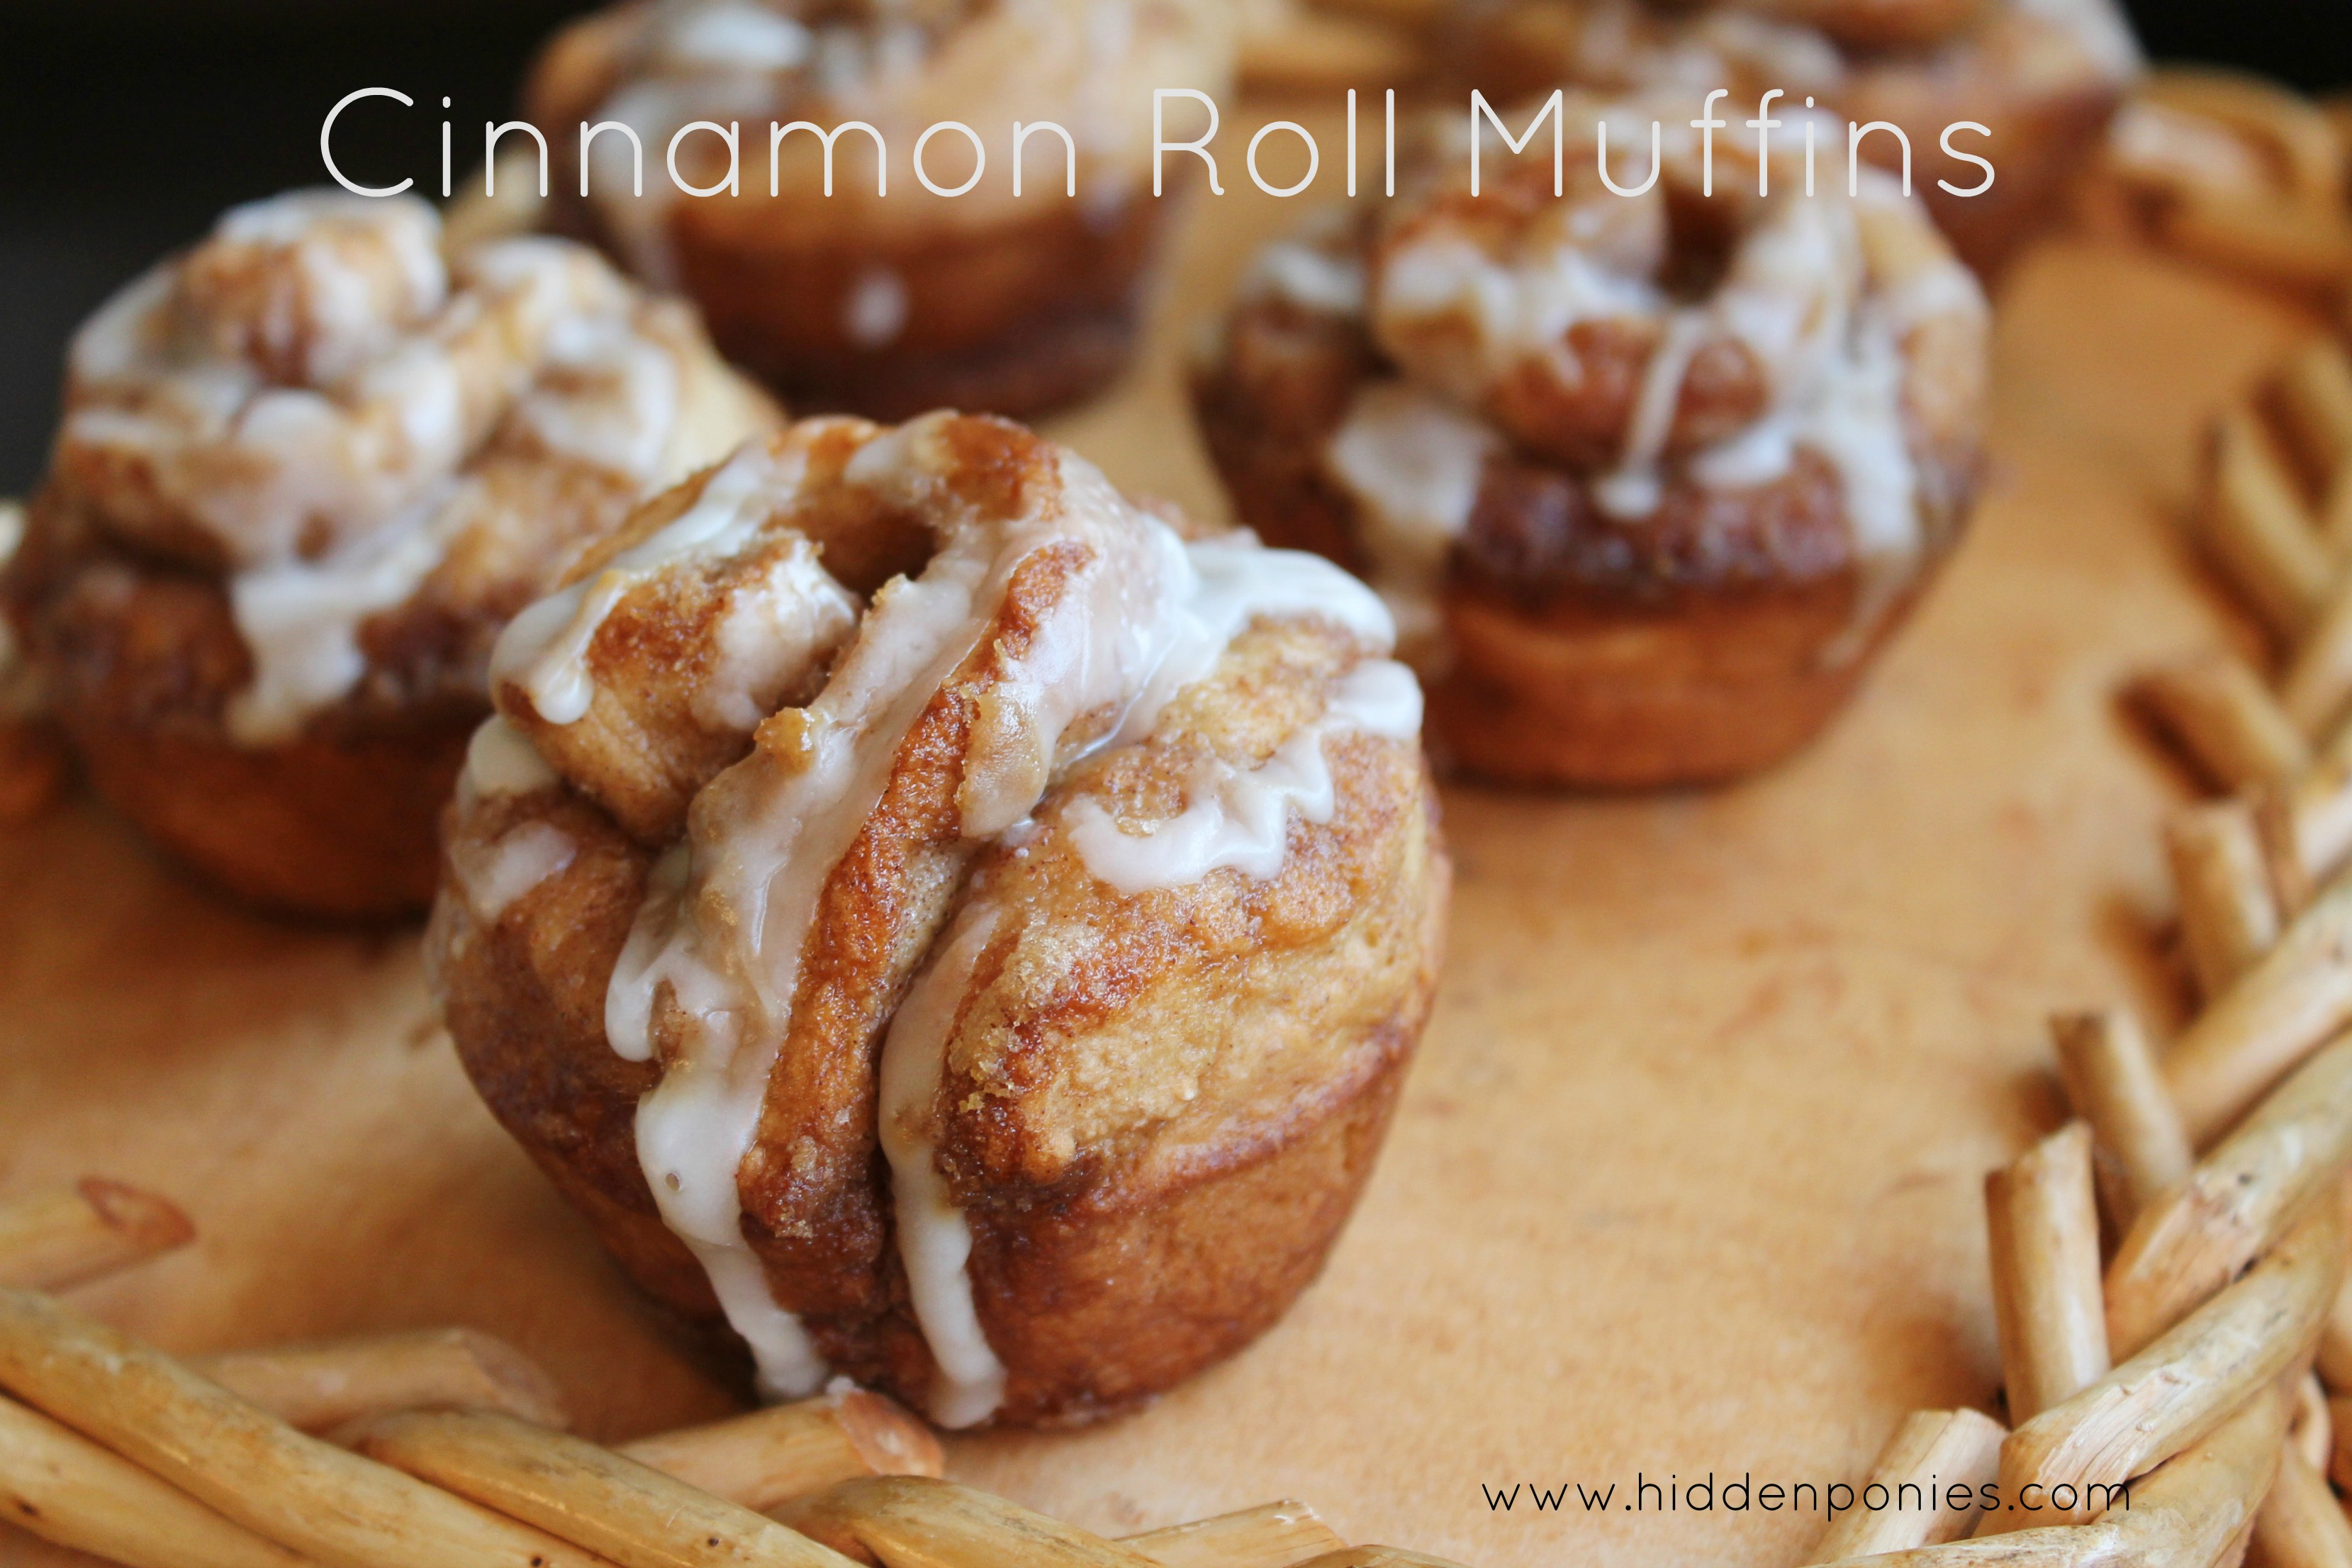 Cinnamon Roll Muffins - a quick everyday way to get your cinnabon fix!